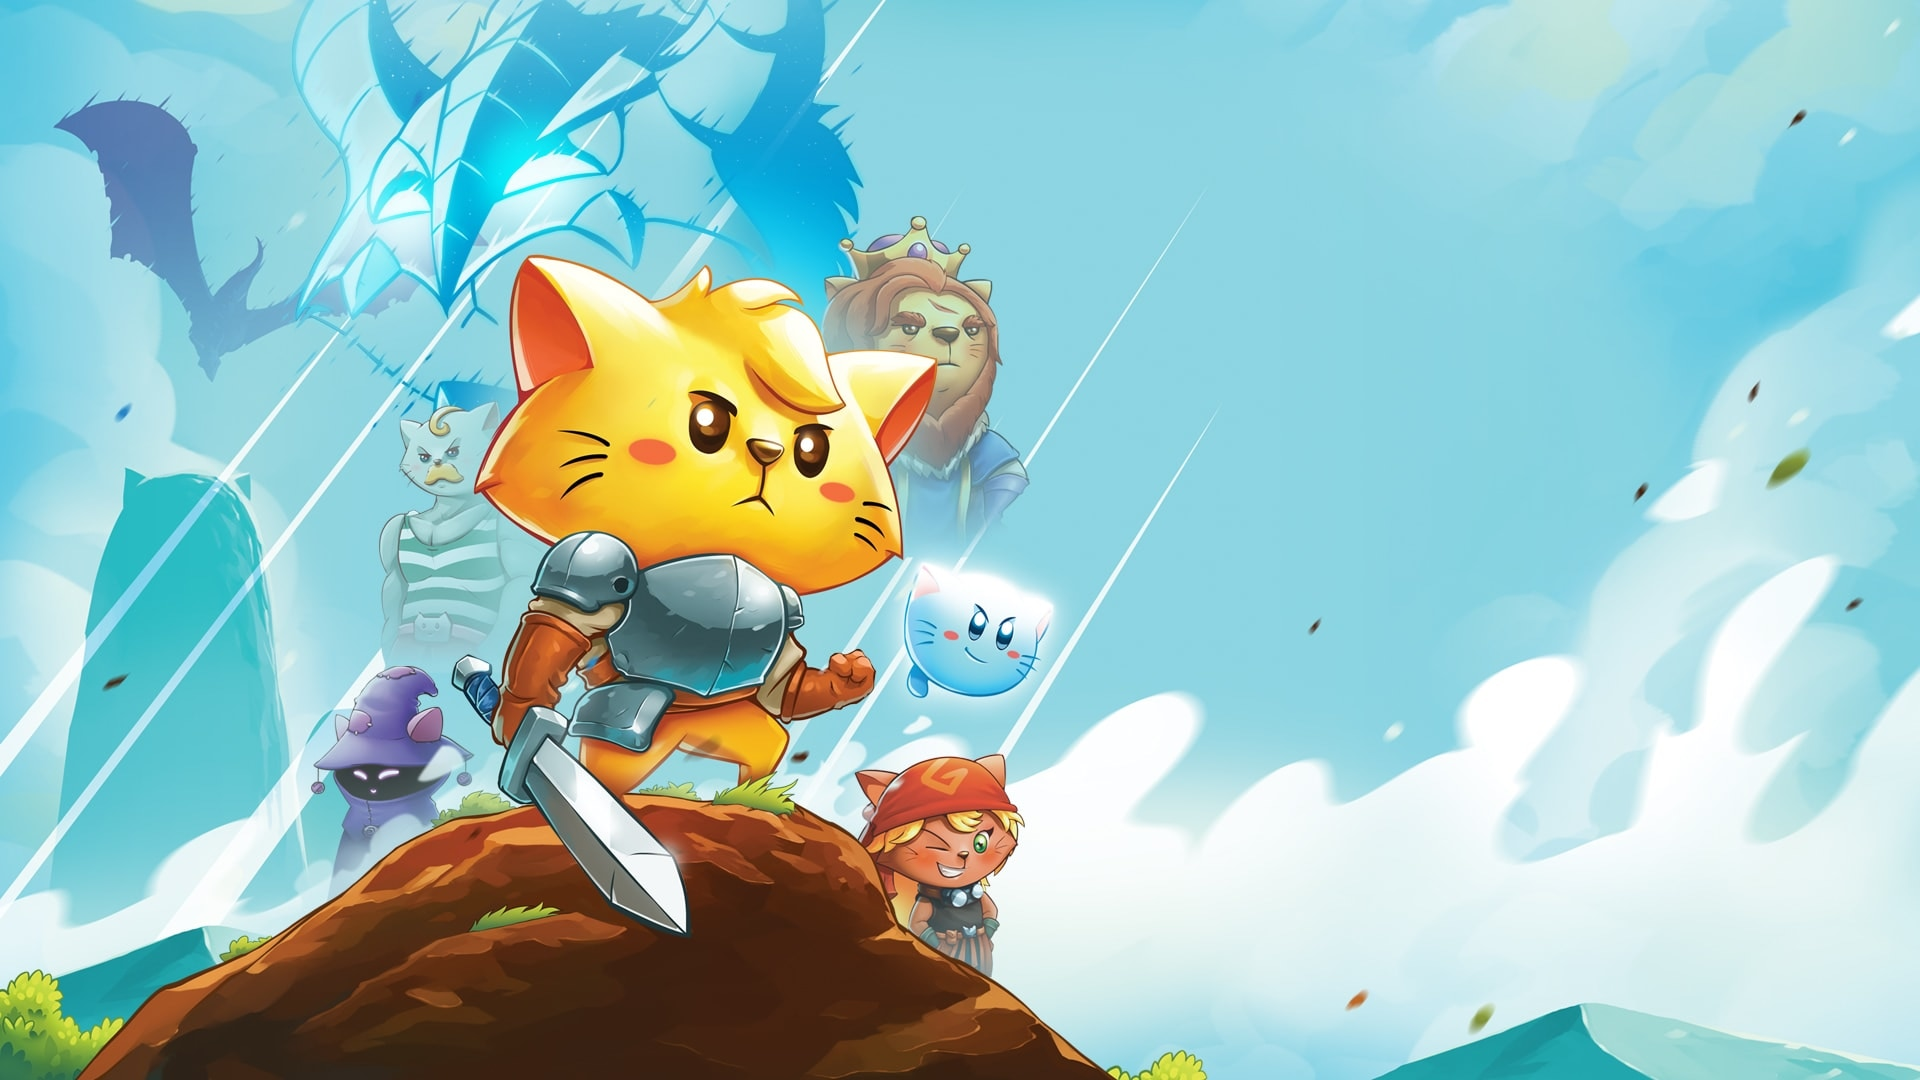 CAT QUEST (English/Chinese/Japanese Ver.)